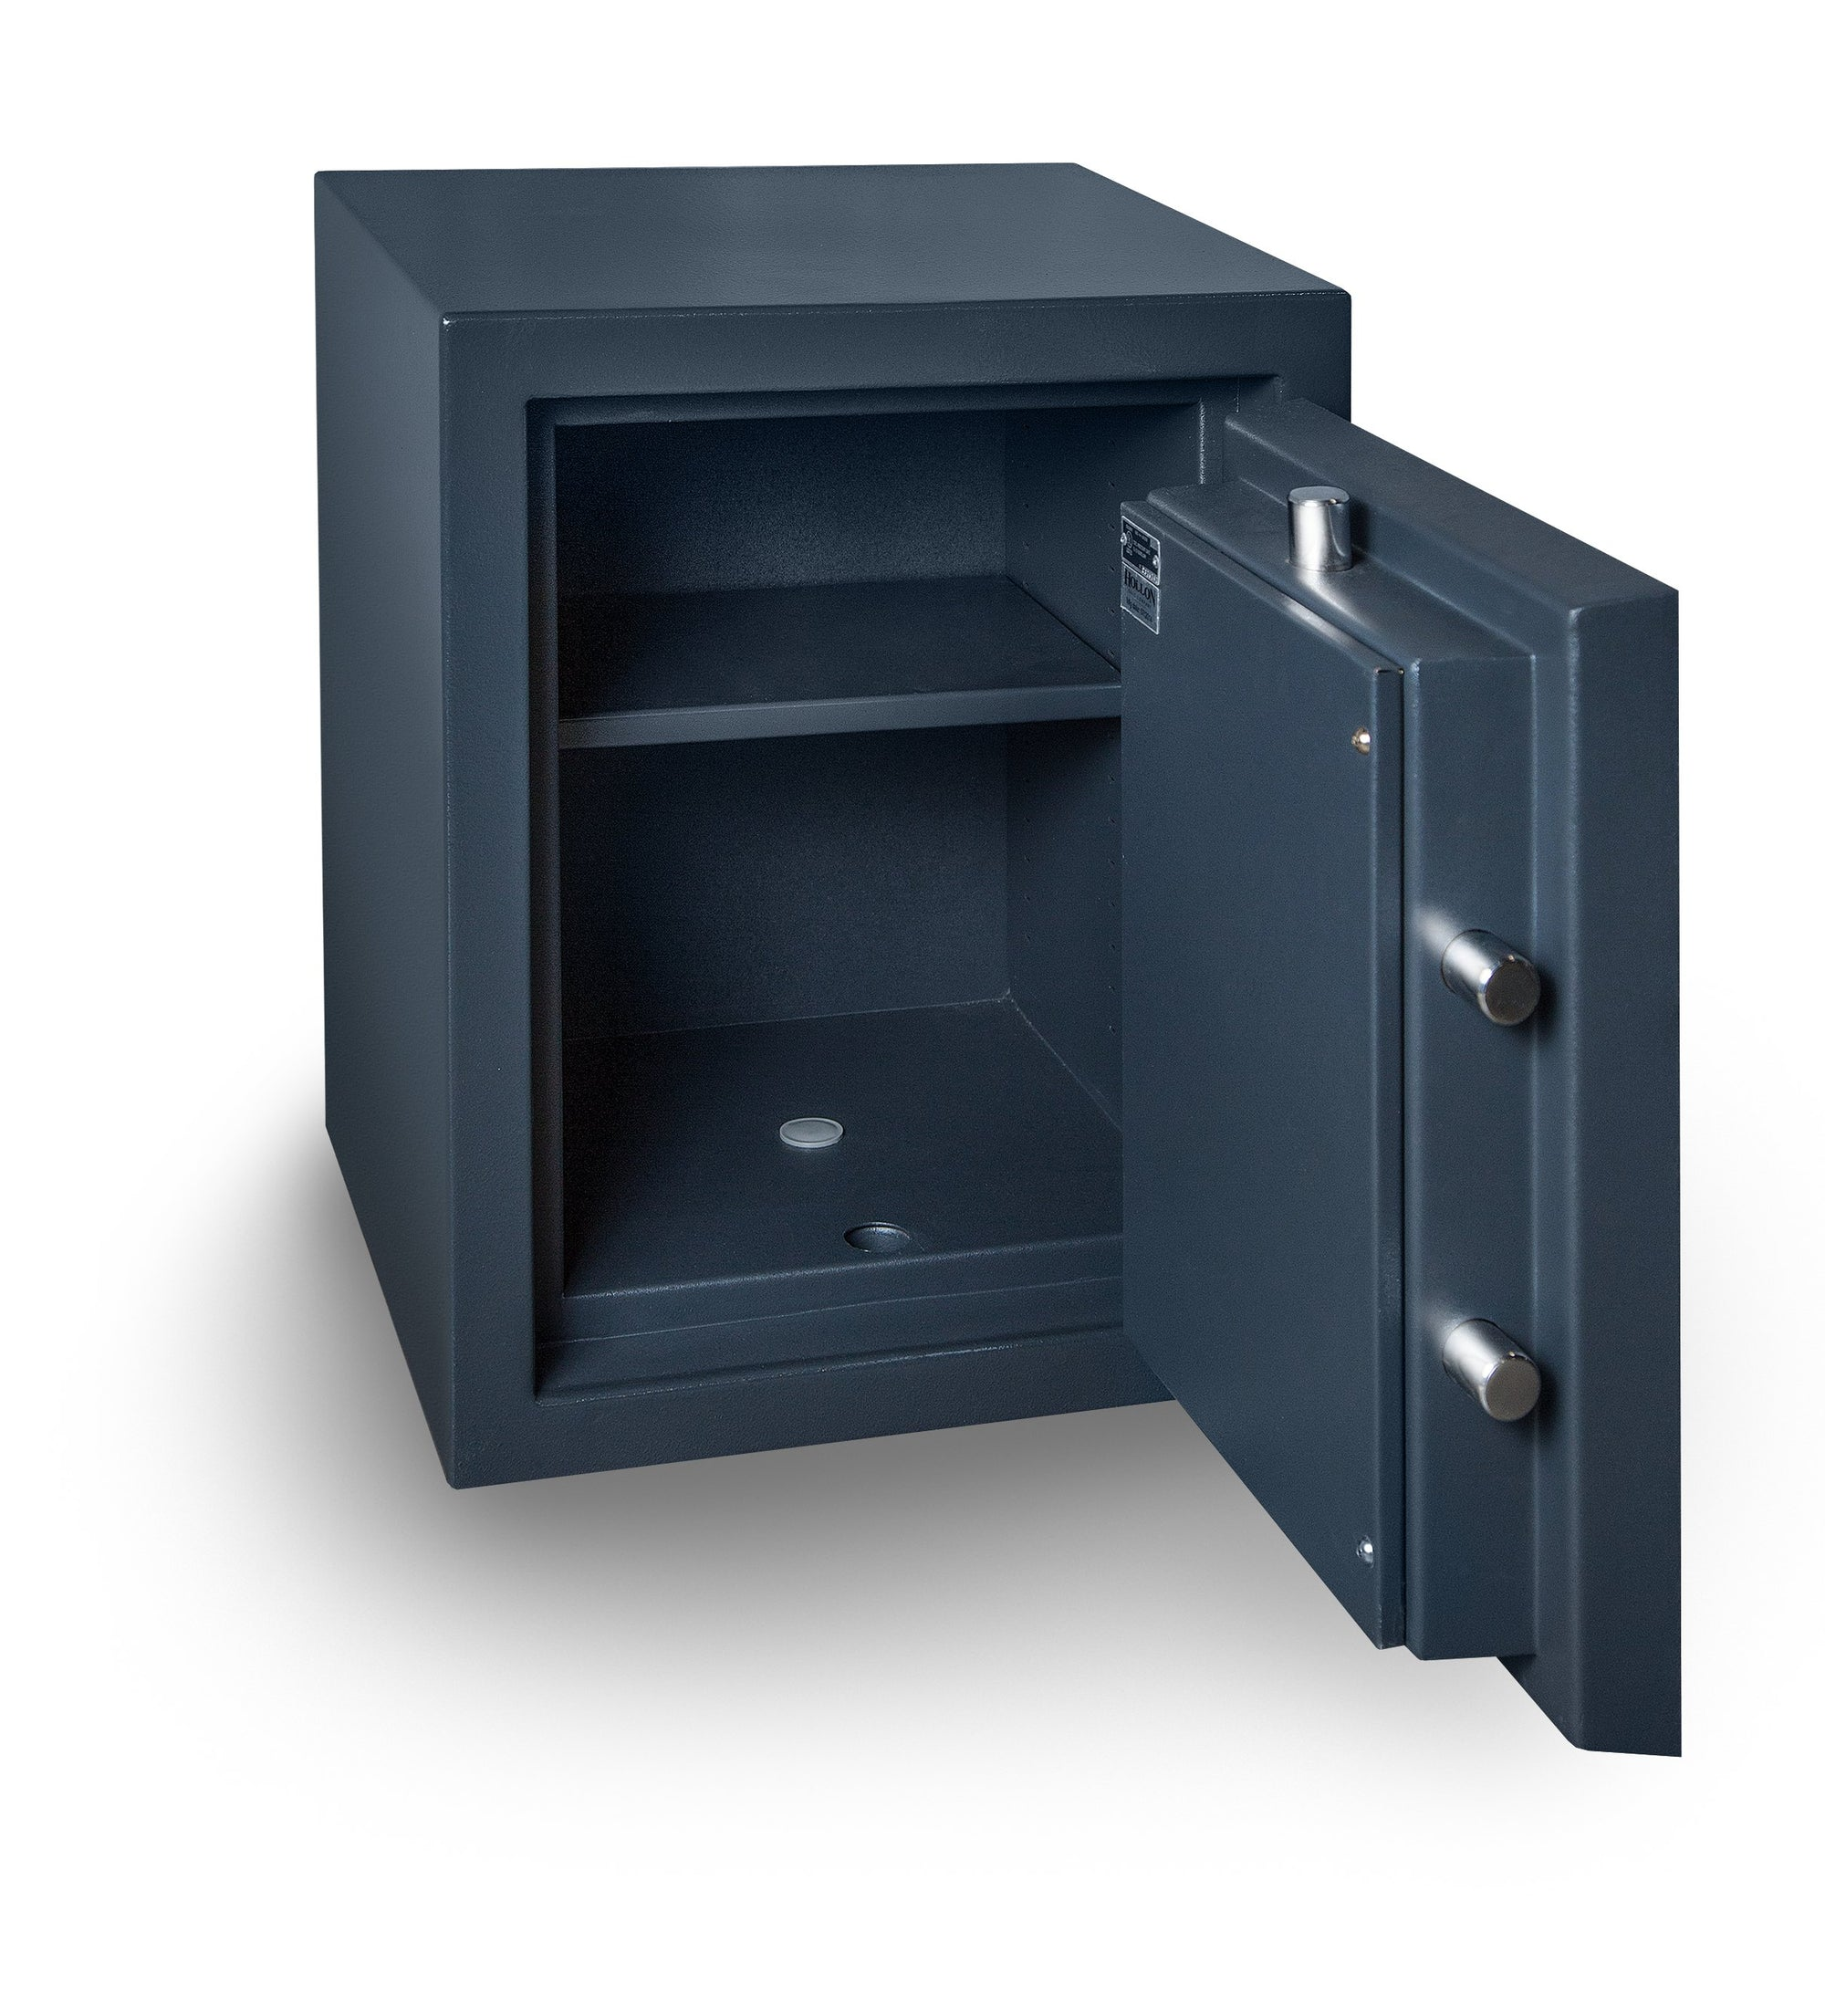 High Security Burglar Fire Safes - Hollon MJ-1814C TL-30 Burglary 2 Hour Fire Safe